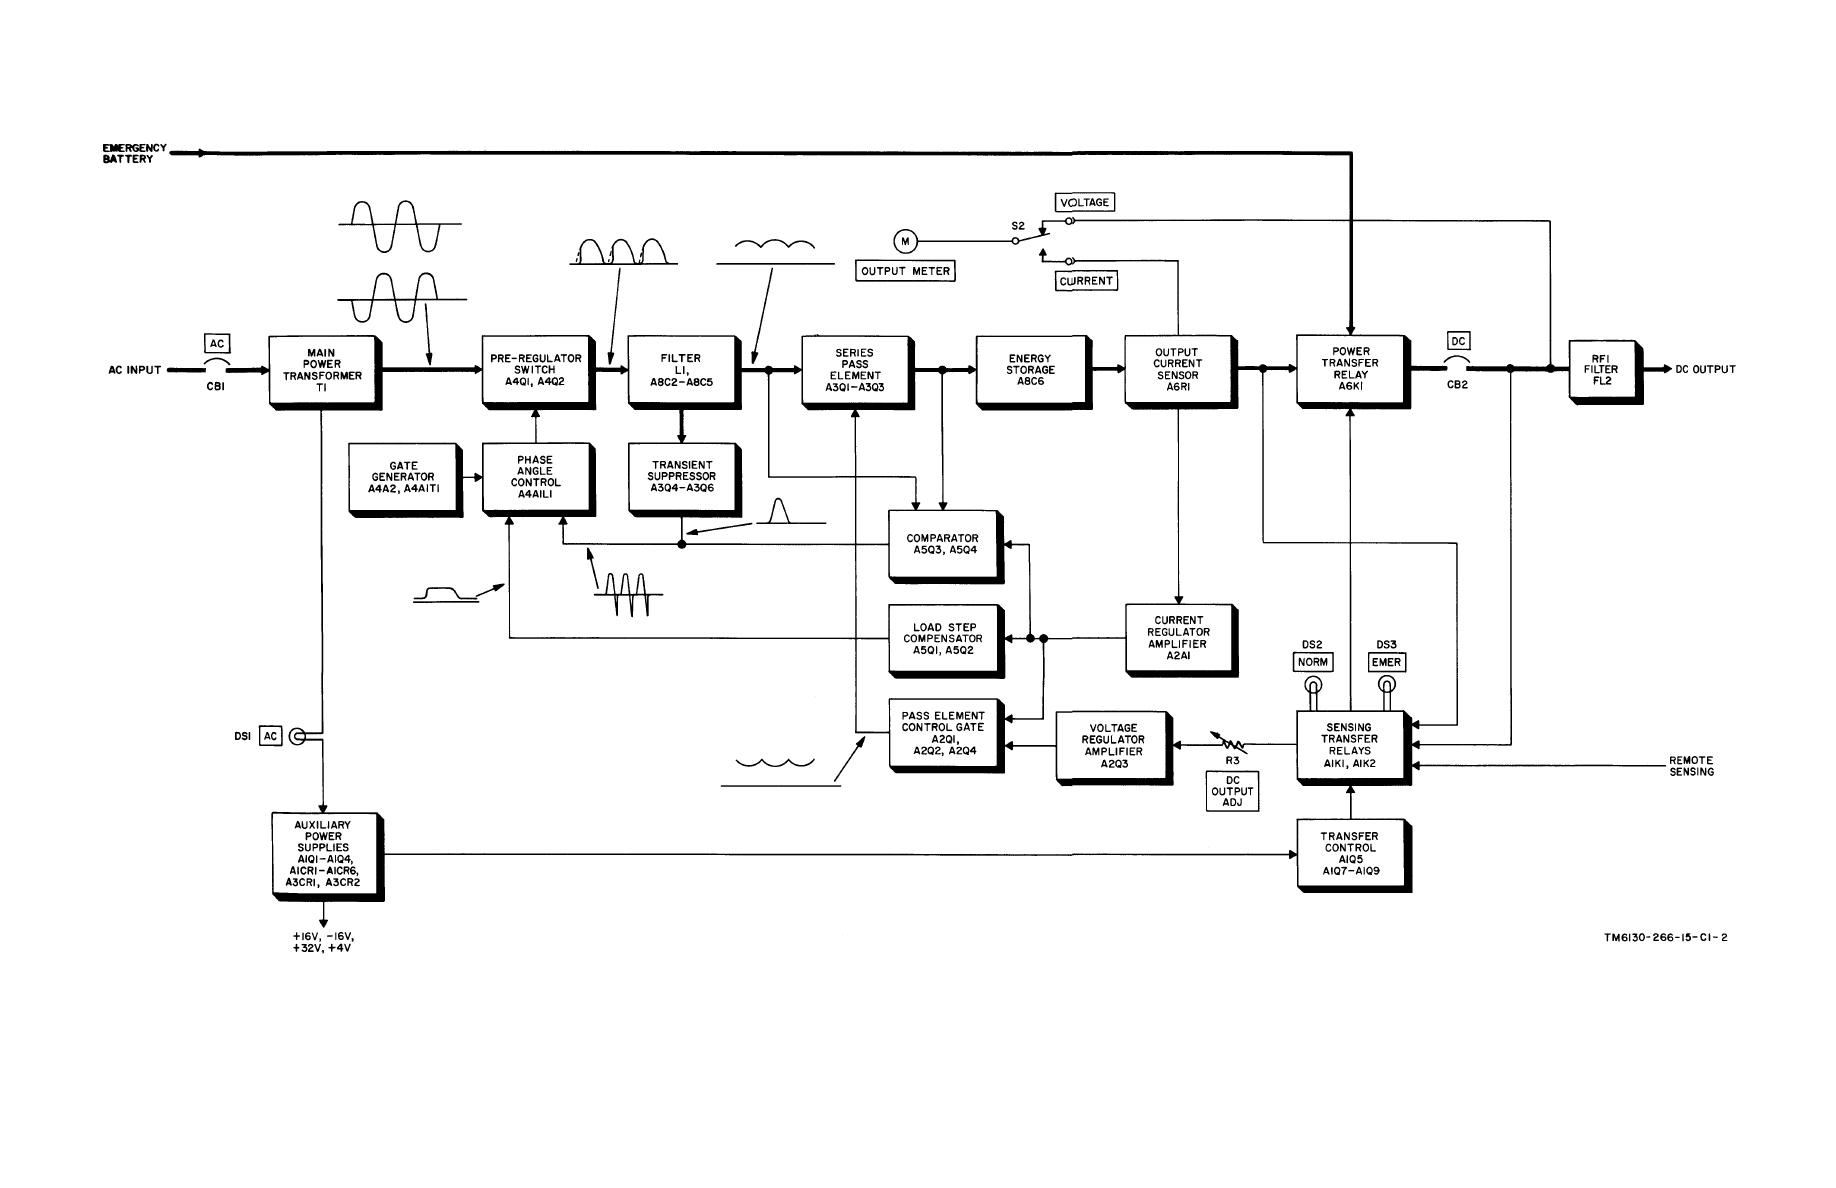 Power Supply PP-6224/U, block diagram.